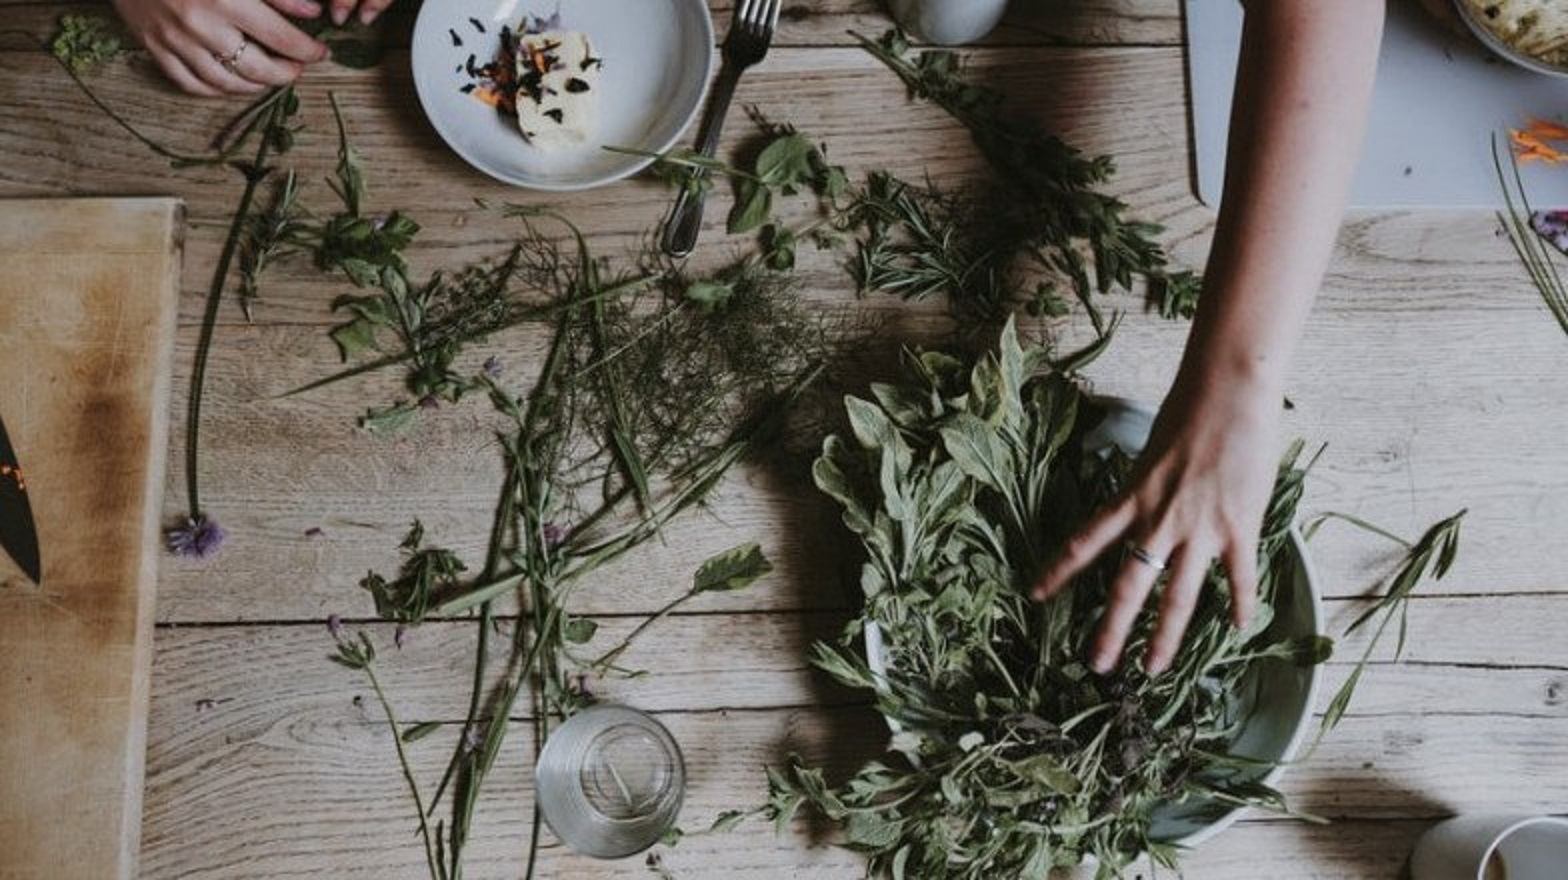 preparing and organizing dried herbs over a wooden counter